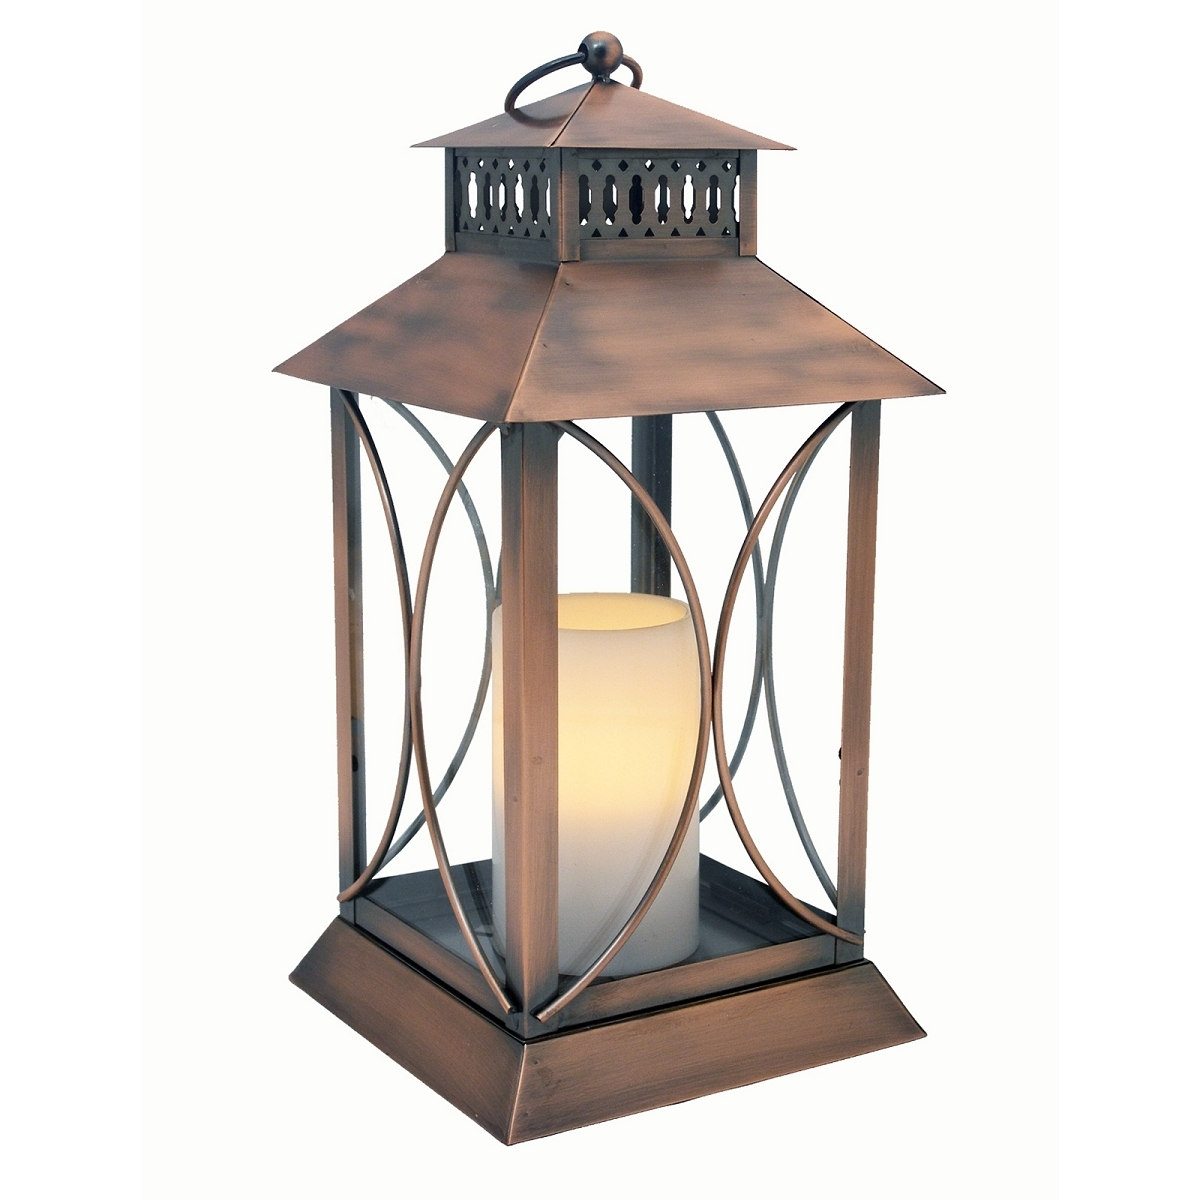 Indoor Outdoor Lanterns With Well Liked Neuporte Flameless Candle Lantern With Timer Indoor Outdoor (View 8 of 20)